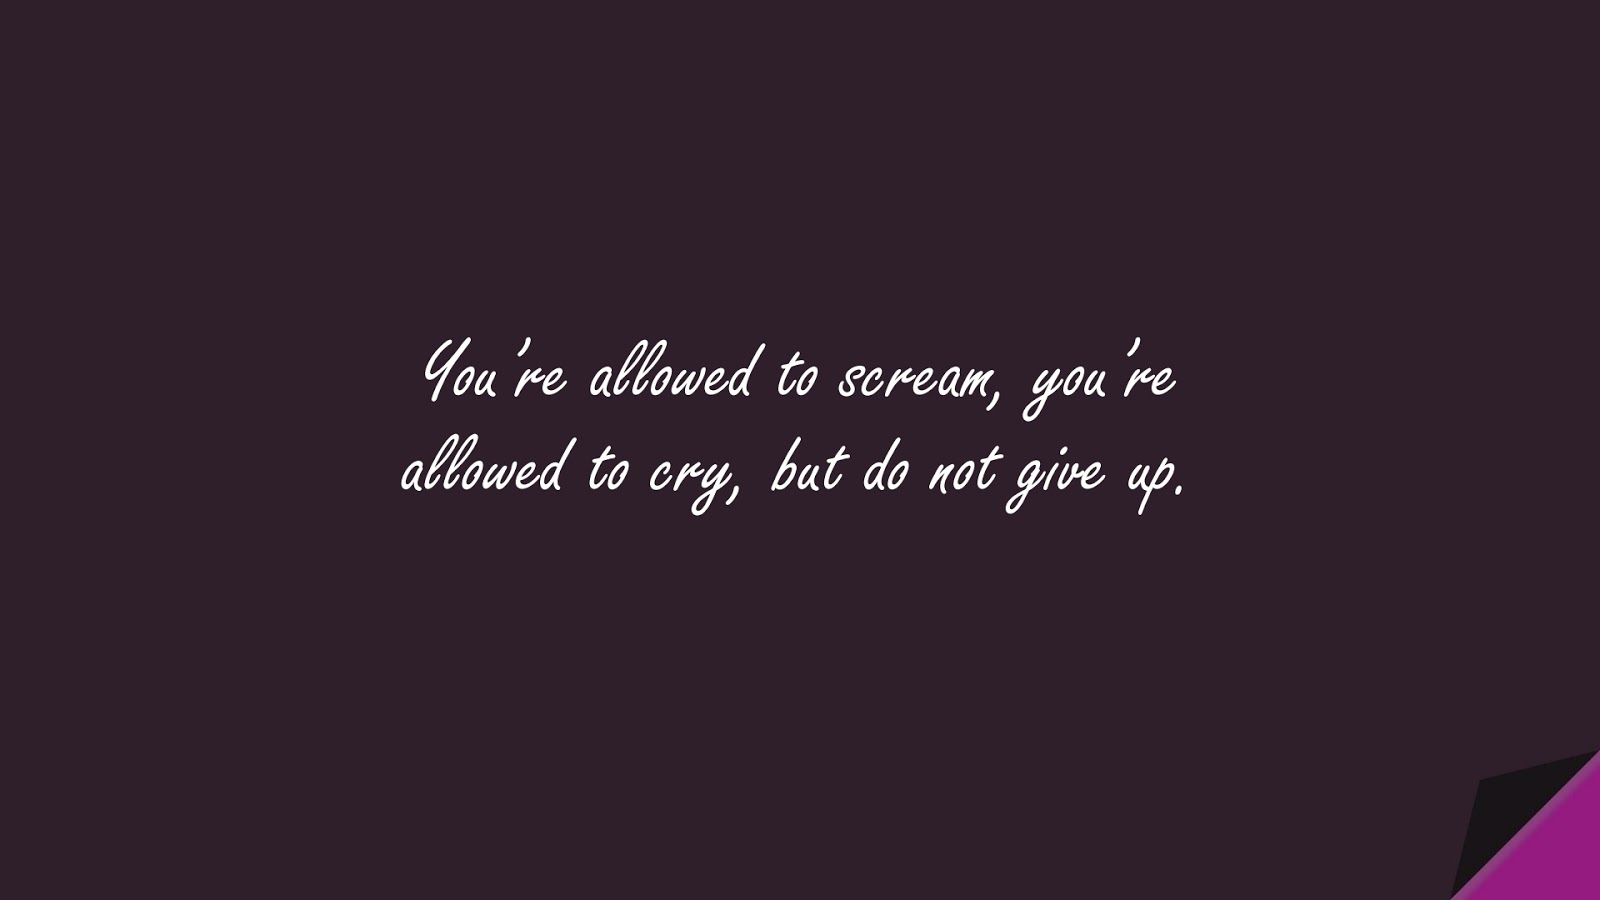 You're allowed to scream, you're allowed to cry, but do not give up.FALSE